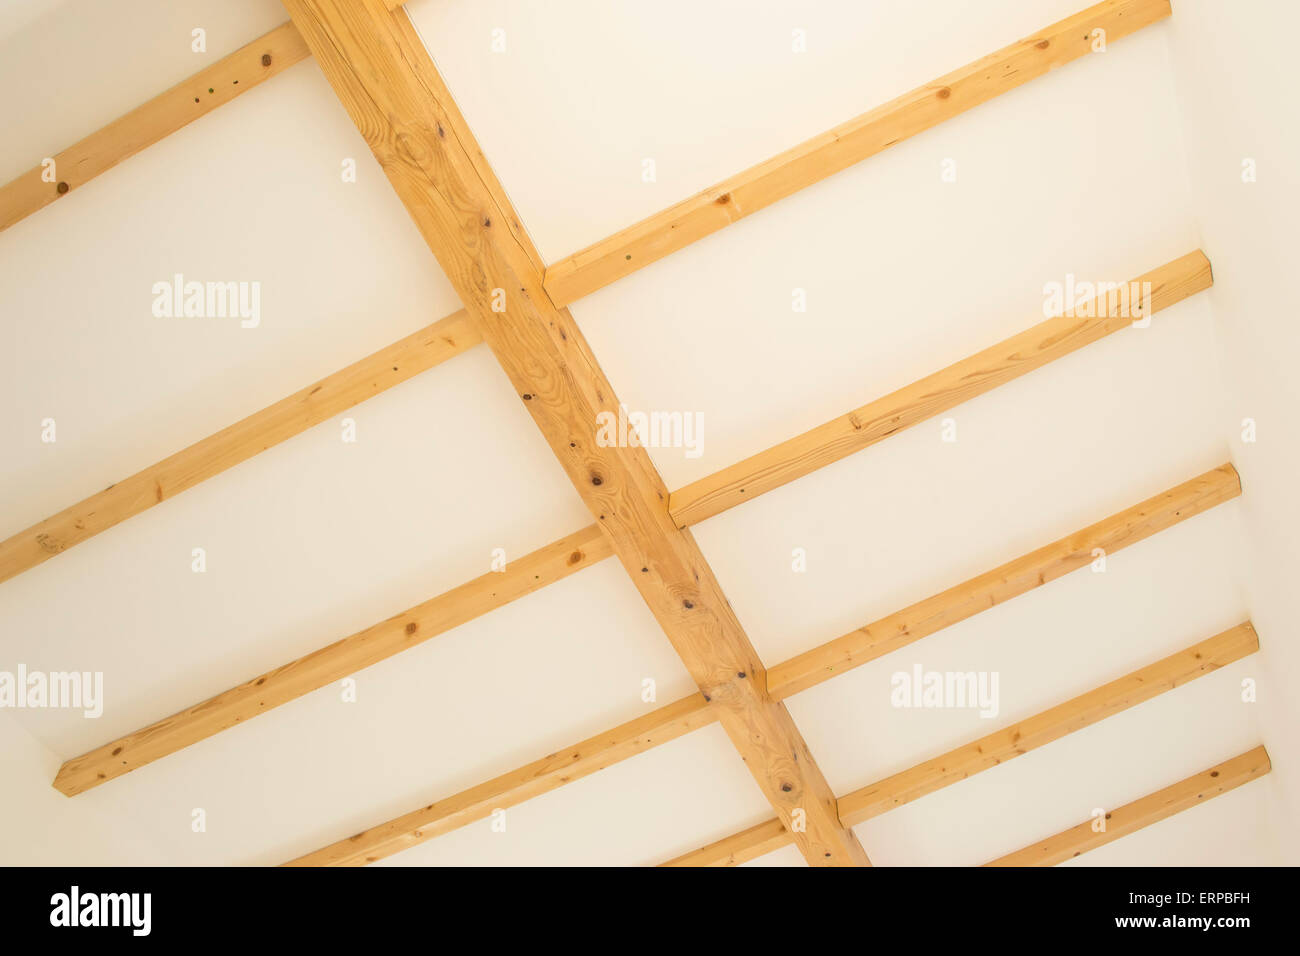 Roof with supportive wooden beams, main girder and parallel secondary beams - Stock Image